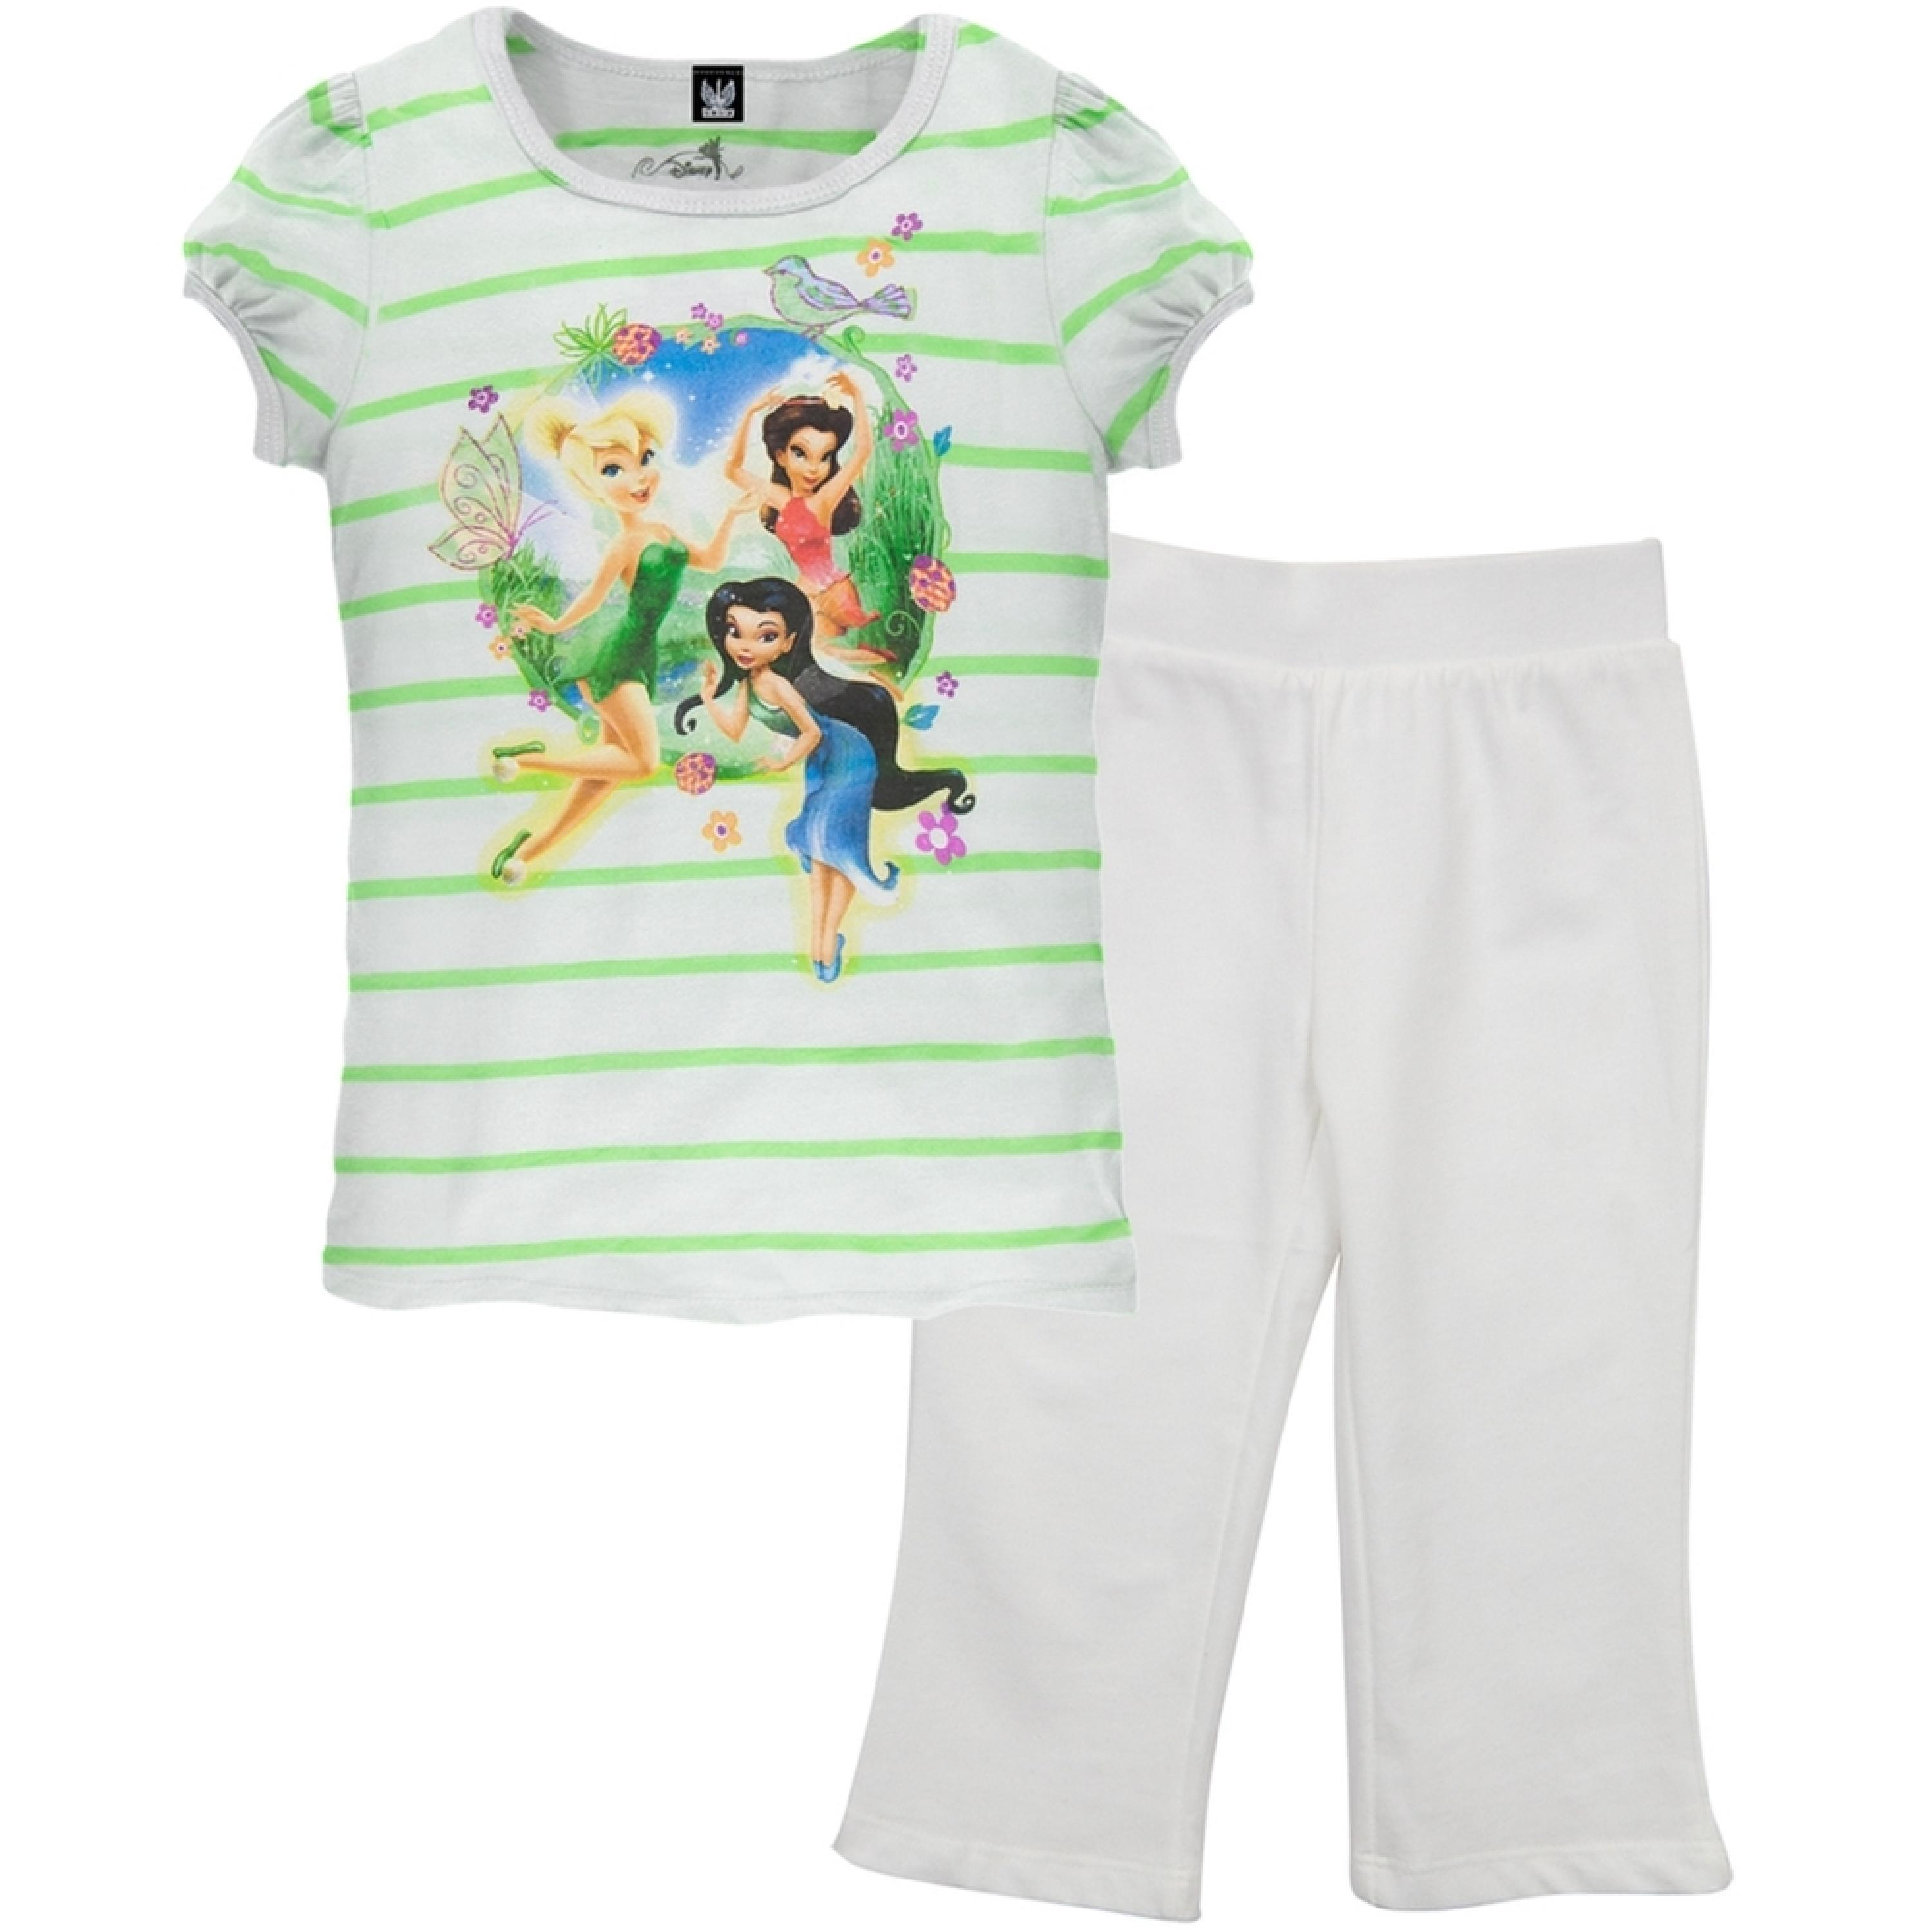 Disney - Fairies Garden Juvy Capri Set